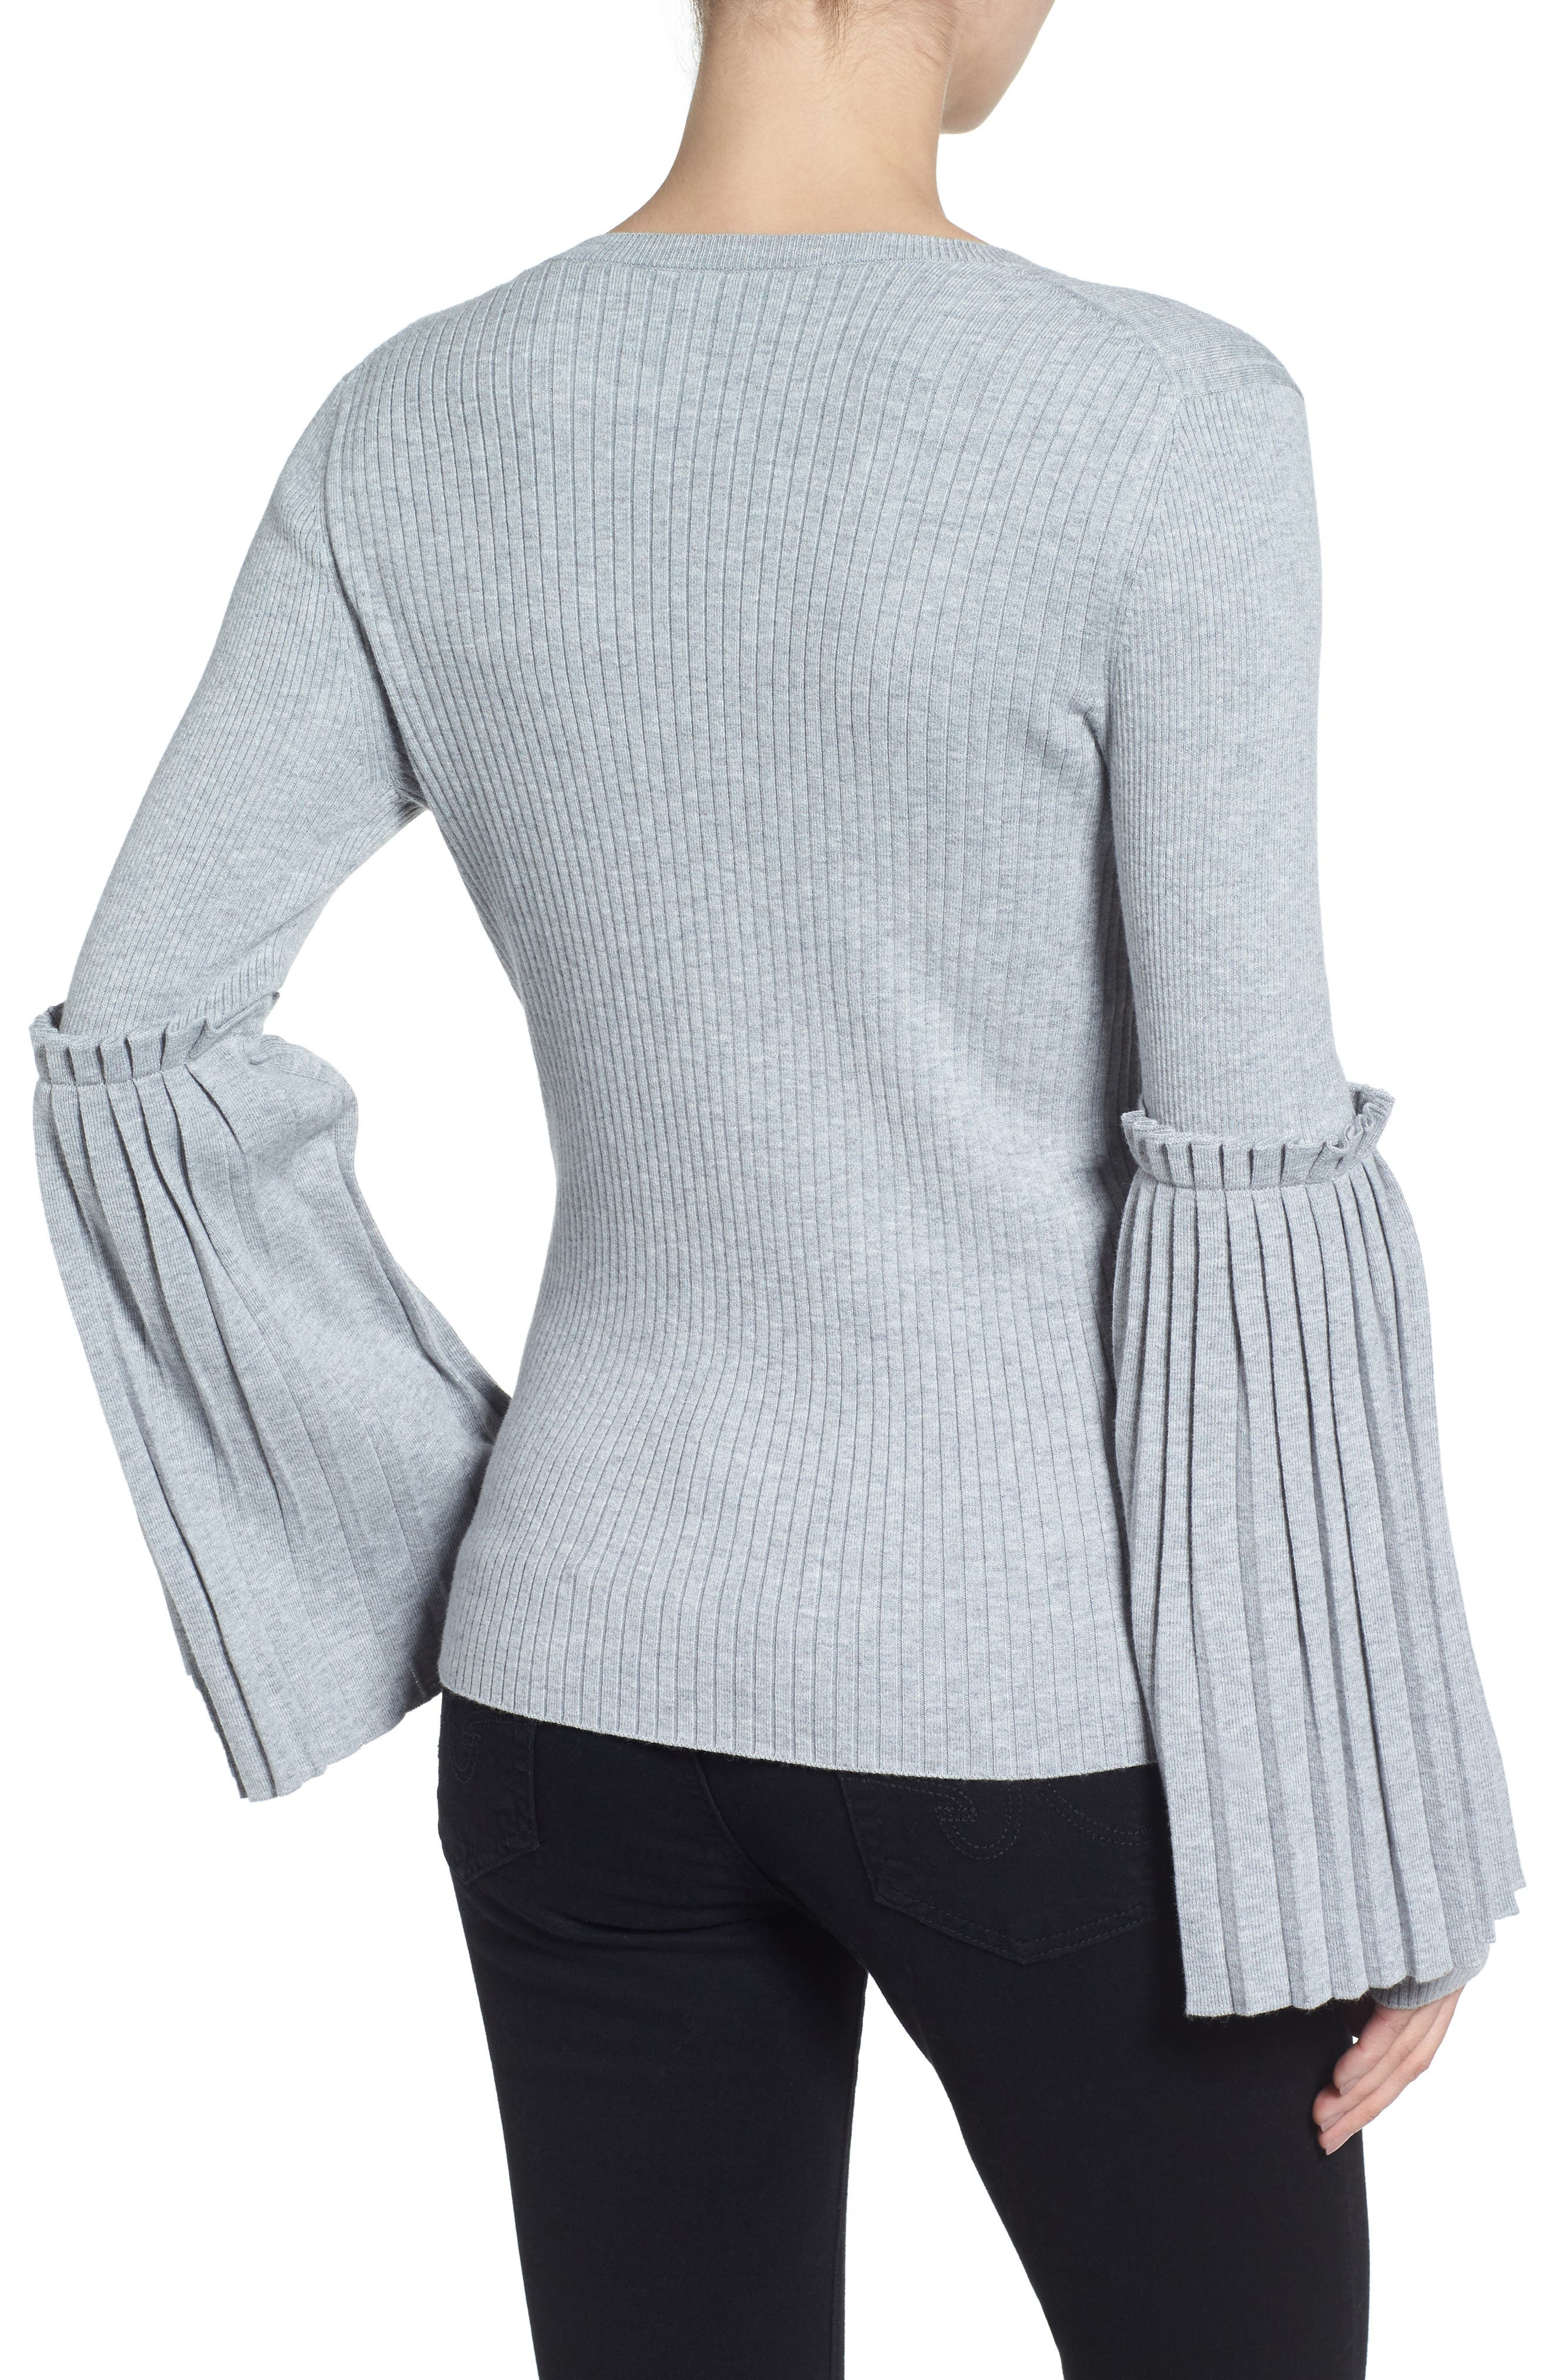 Bell Sleeve Sweater,                             Alternate thumbnail 2, color,                             050